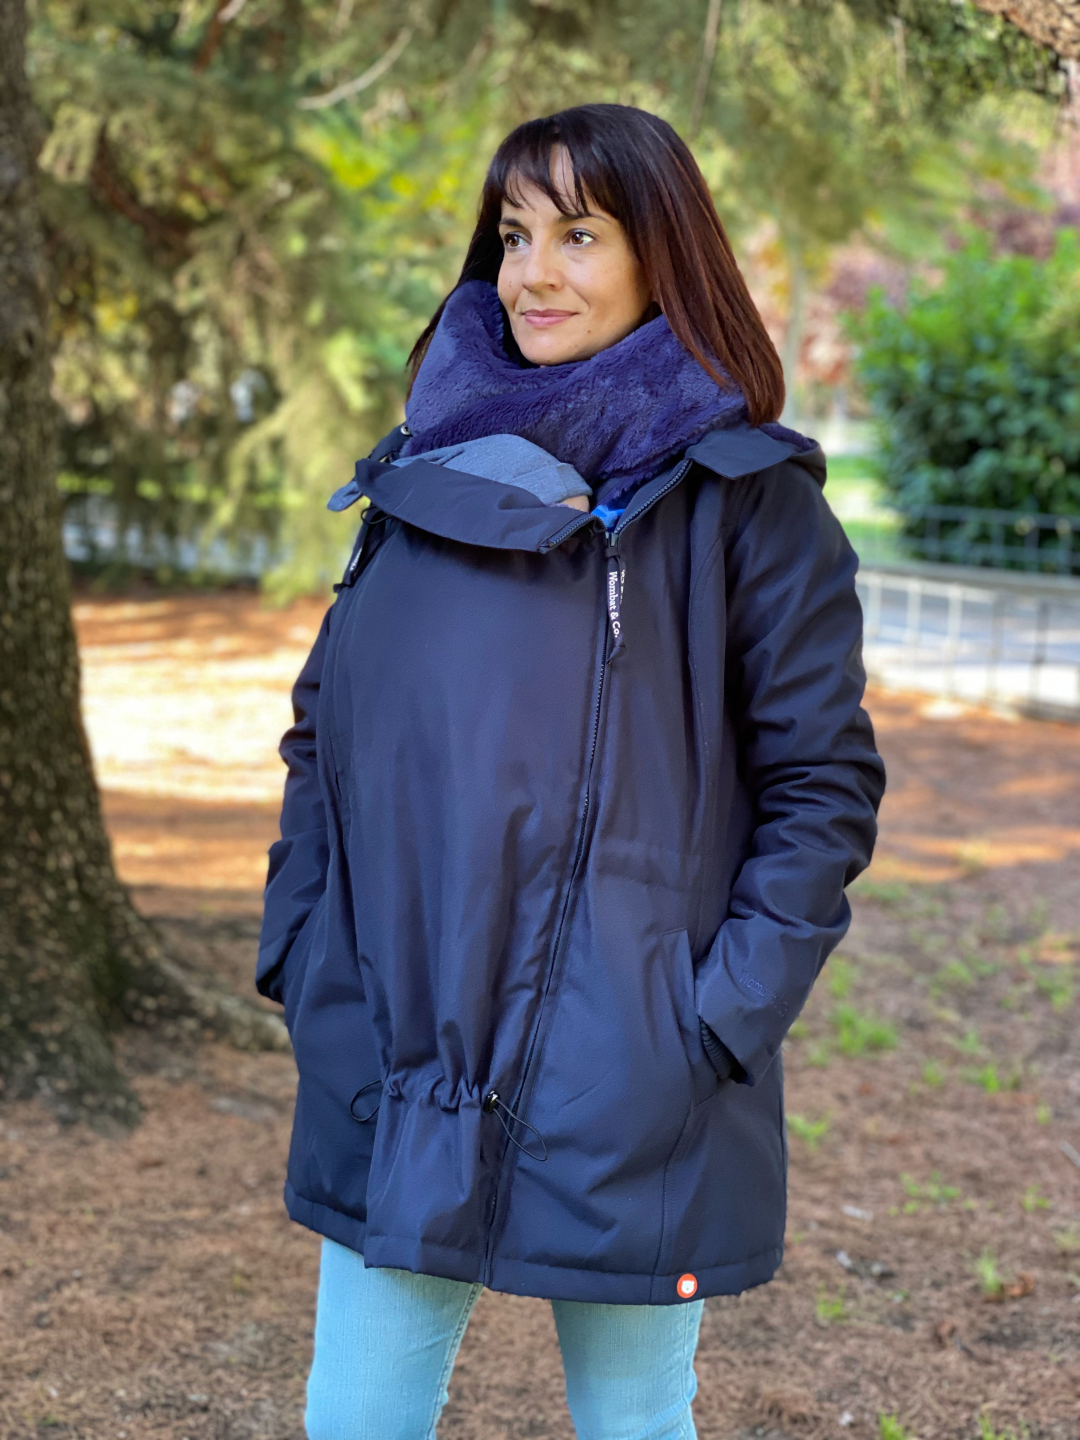 Manteau de portage Wallaby - Wombat & Co - Bleu Marine